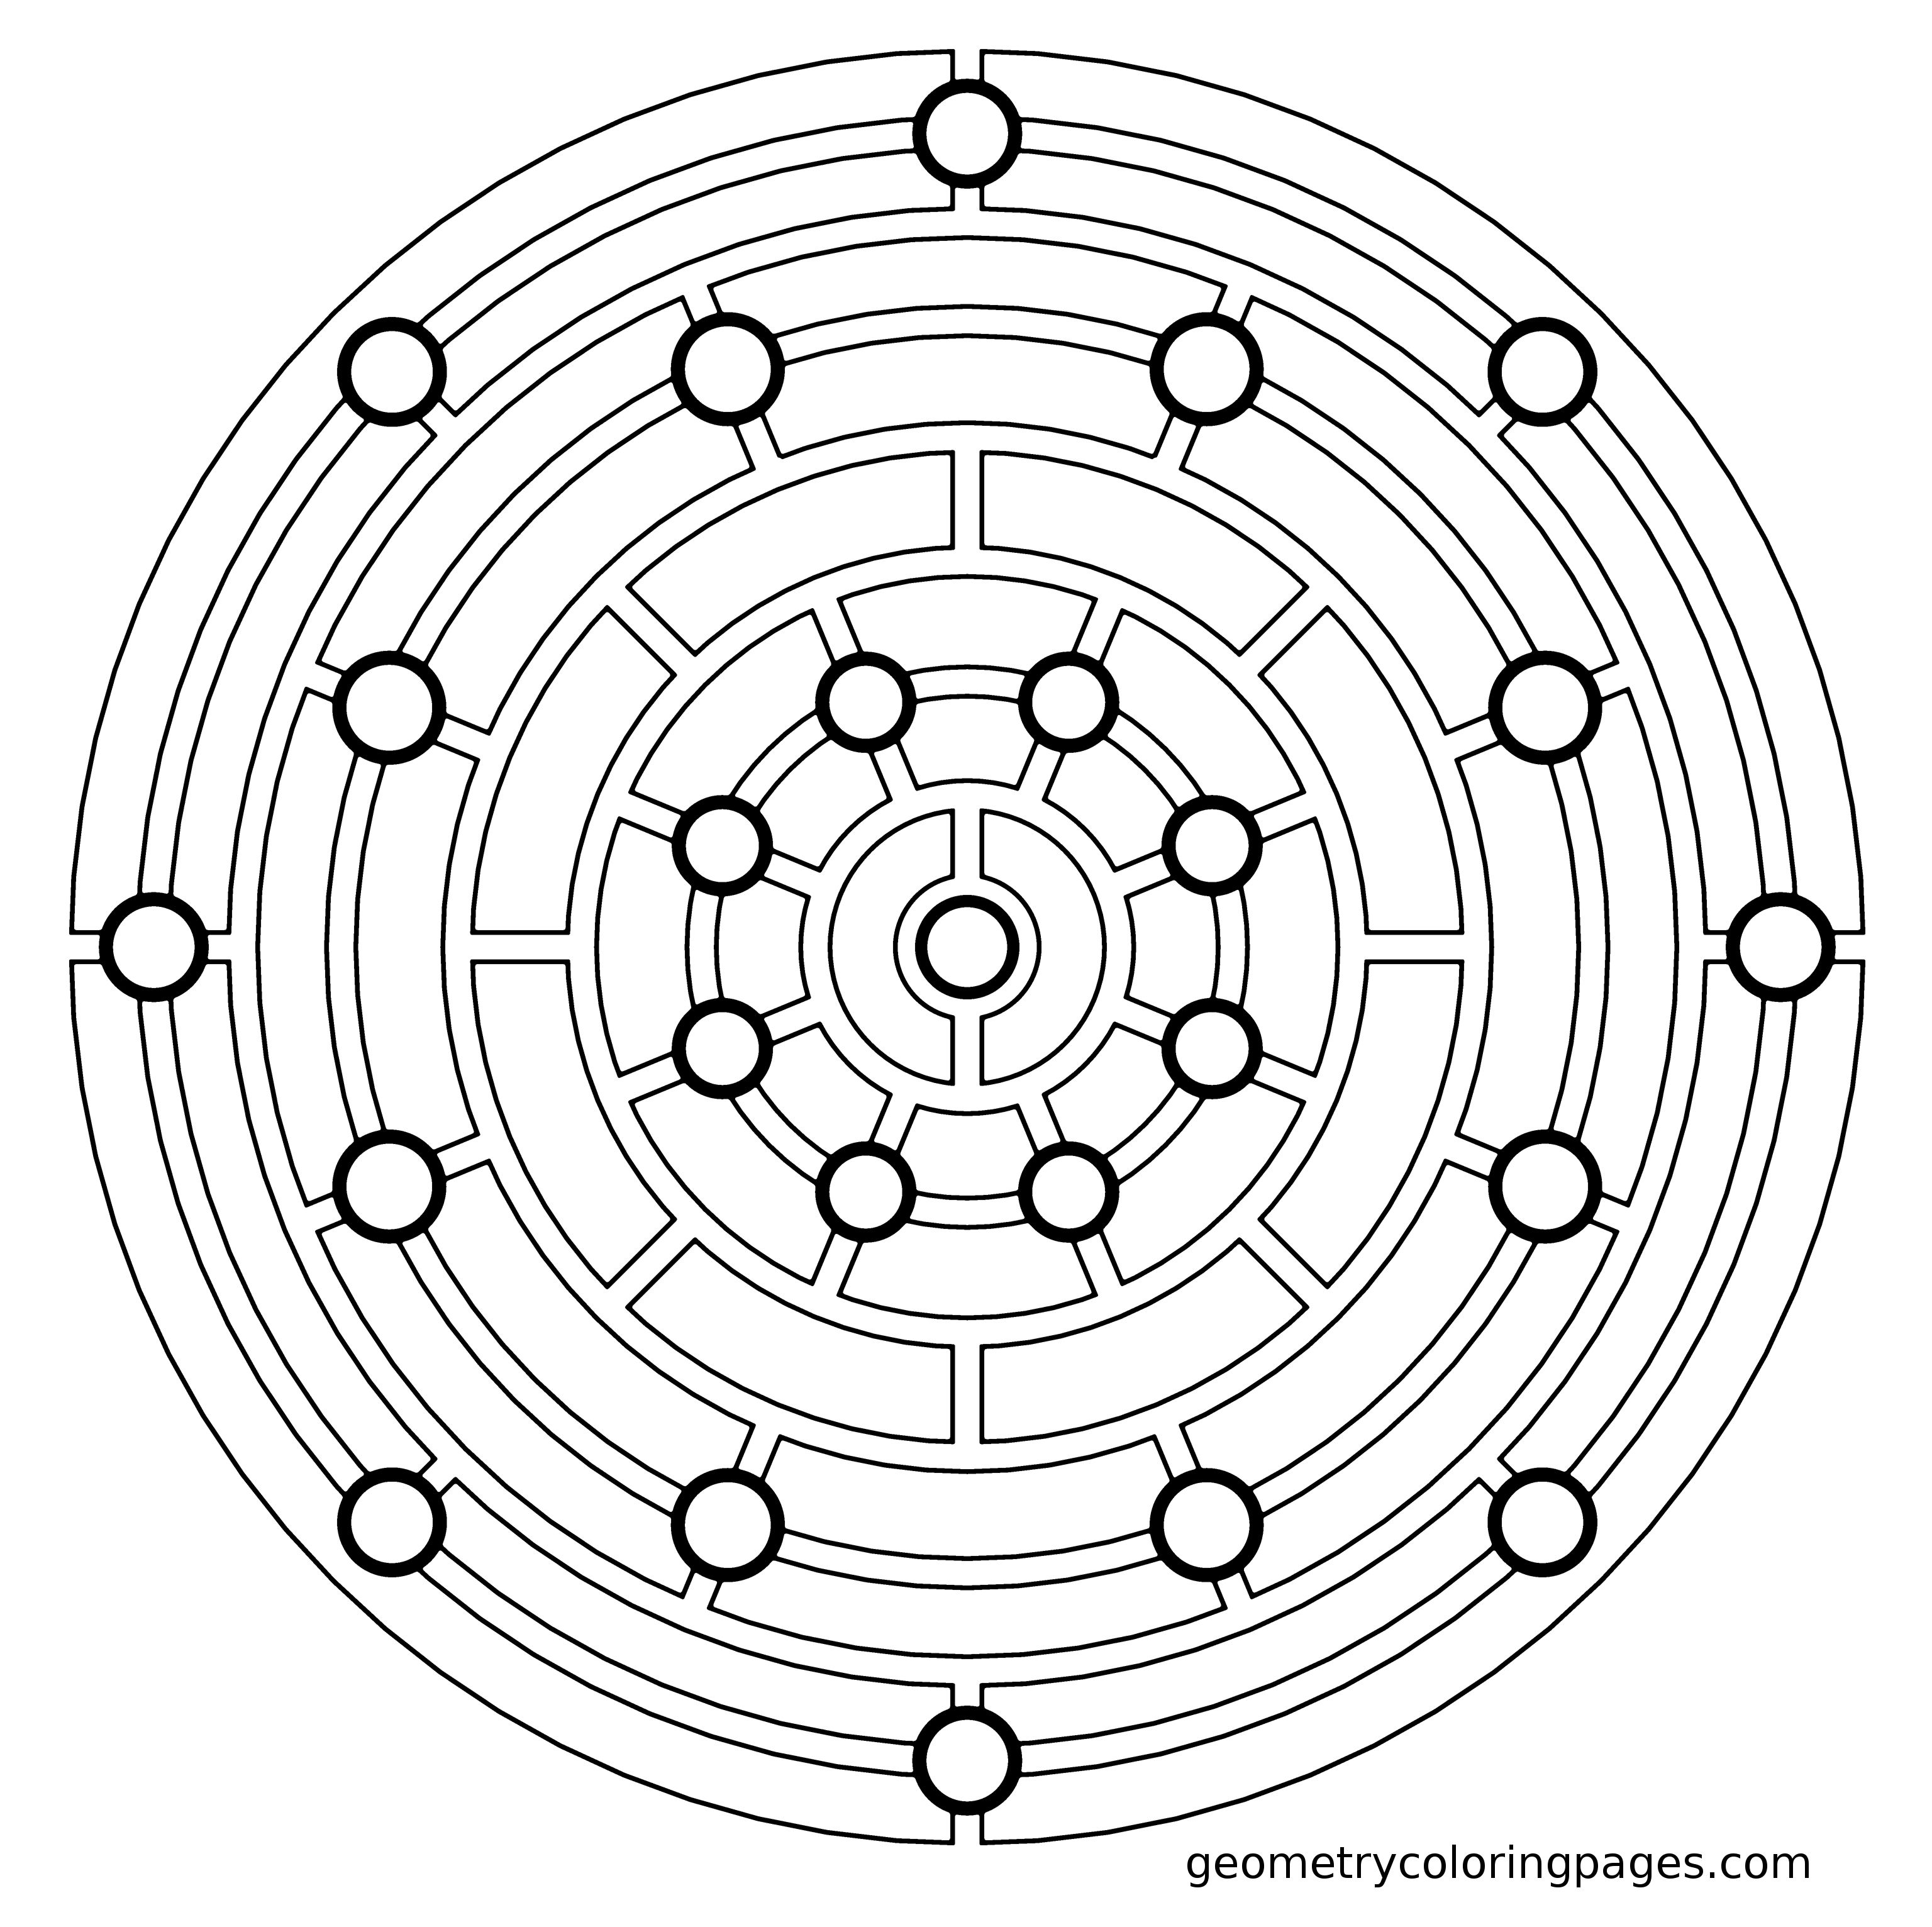 Mandala Coloring Page, Dot Slot from geometrycoloringpages.com ...